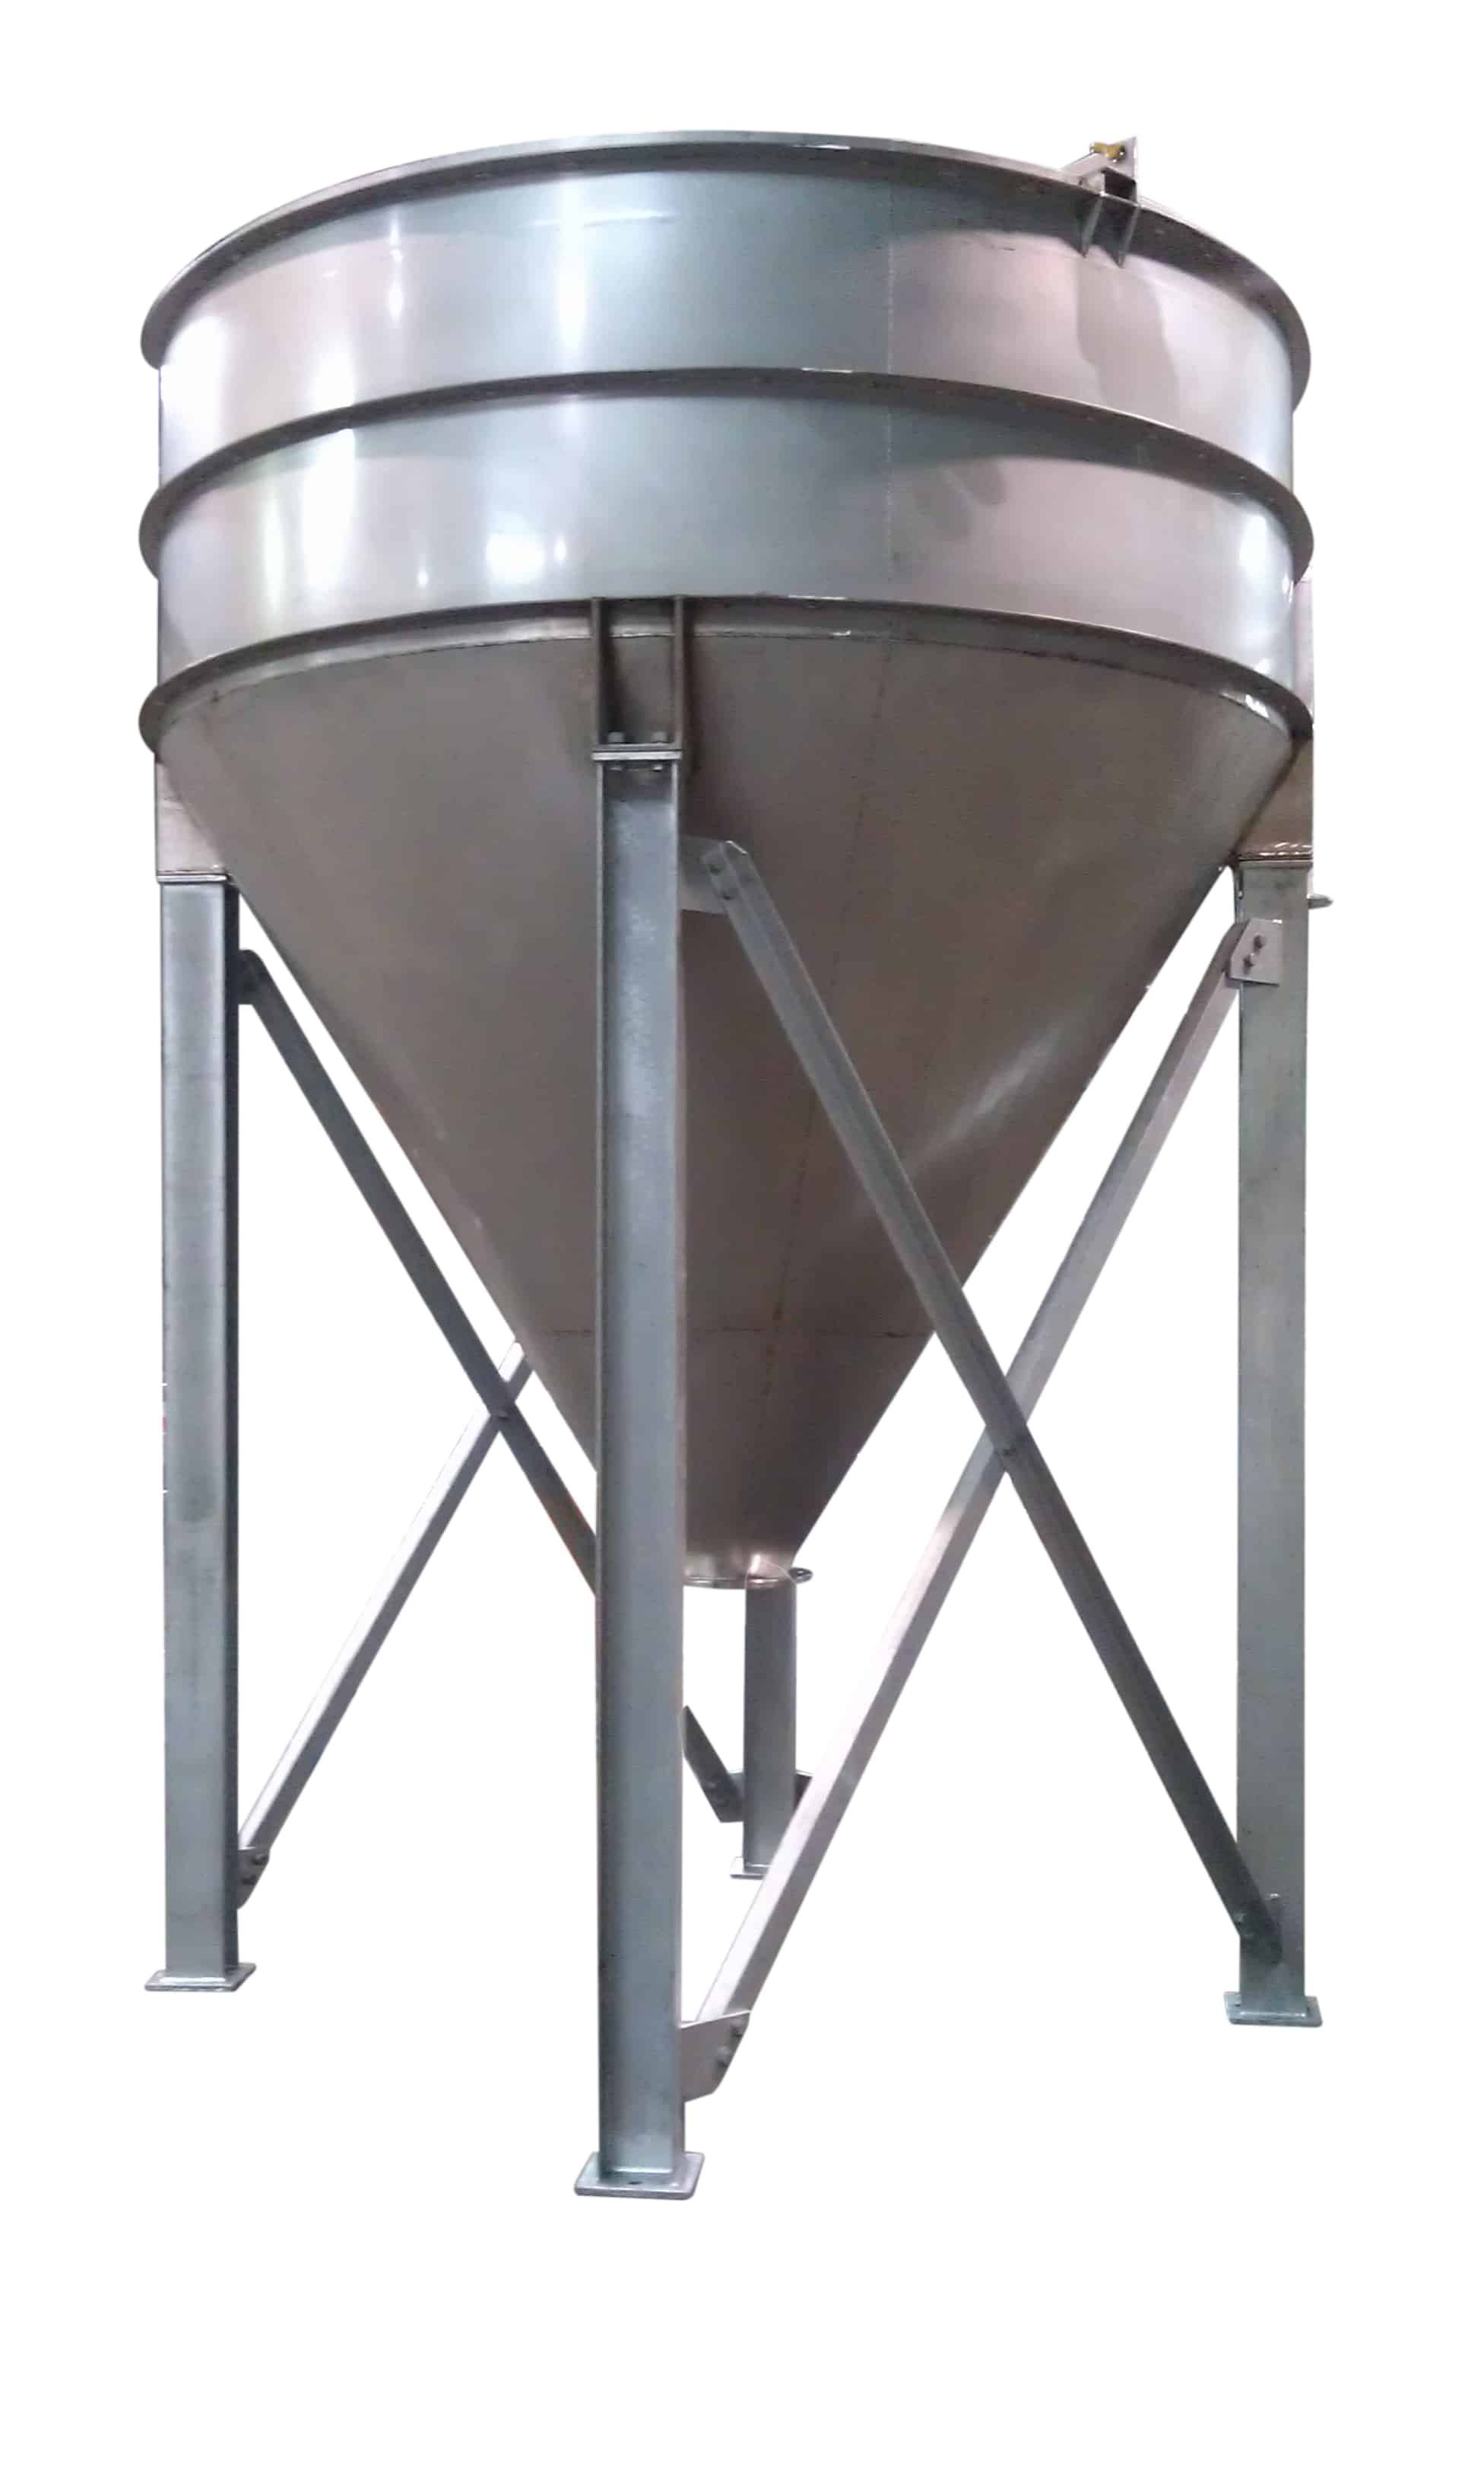 Wastewater clarifiers for separating water and solids